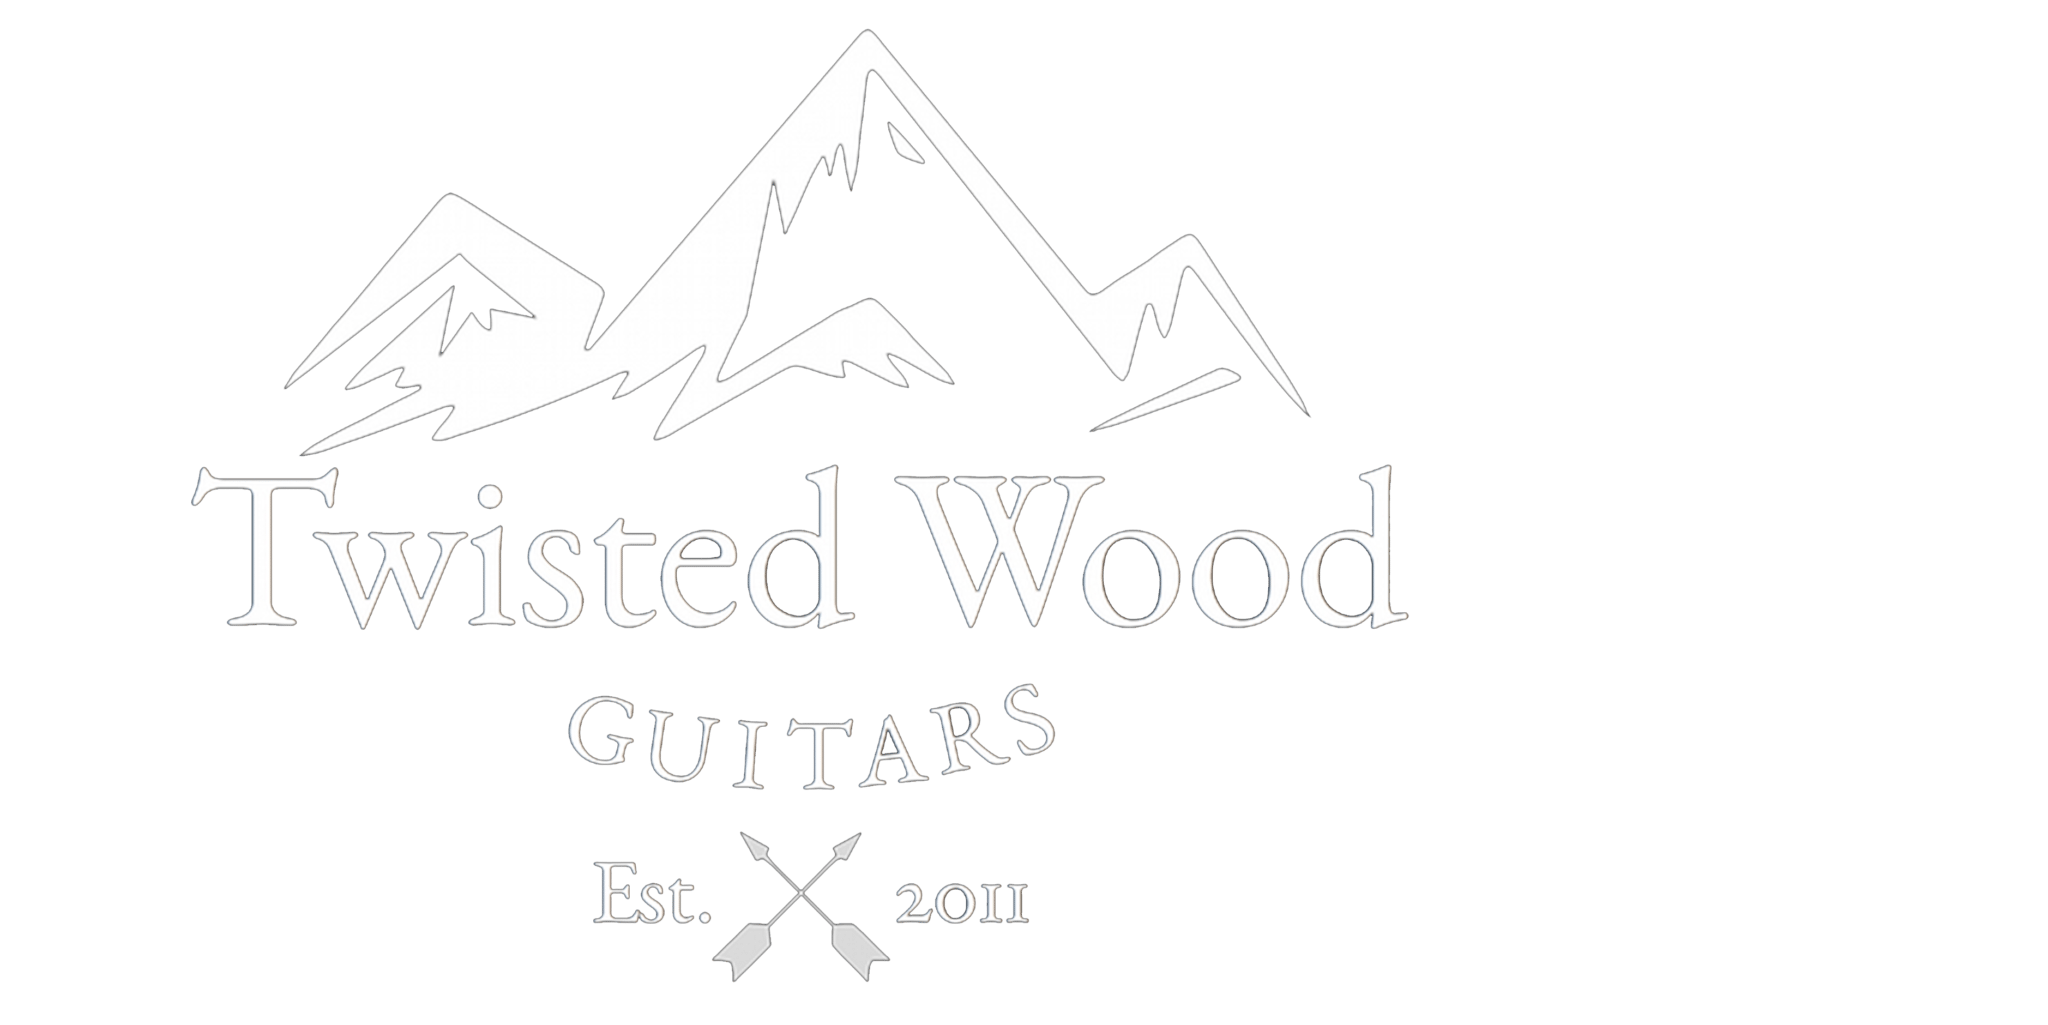 Weissenborn style lap slide guitars in Canada. We specialize in handcrafted Ukuleles, Weissenborn style lap slide guitars. Shipping available world wide